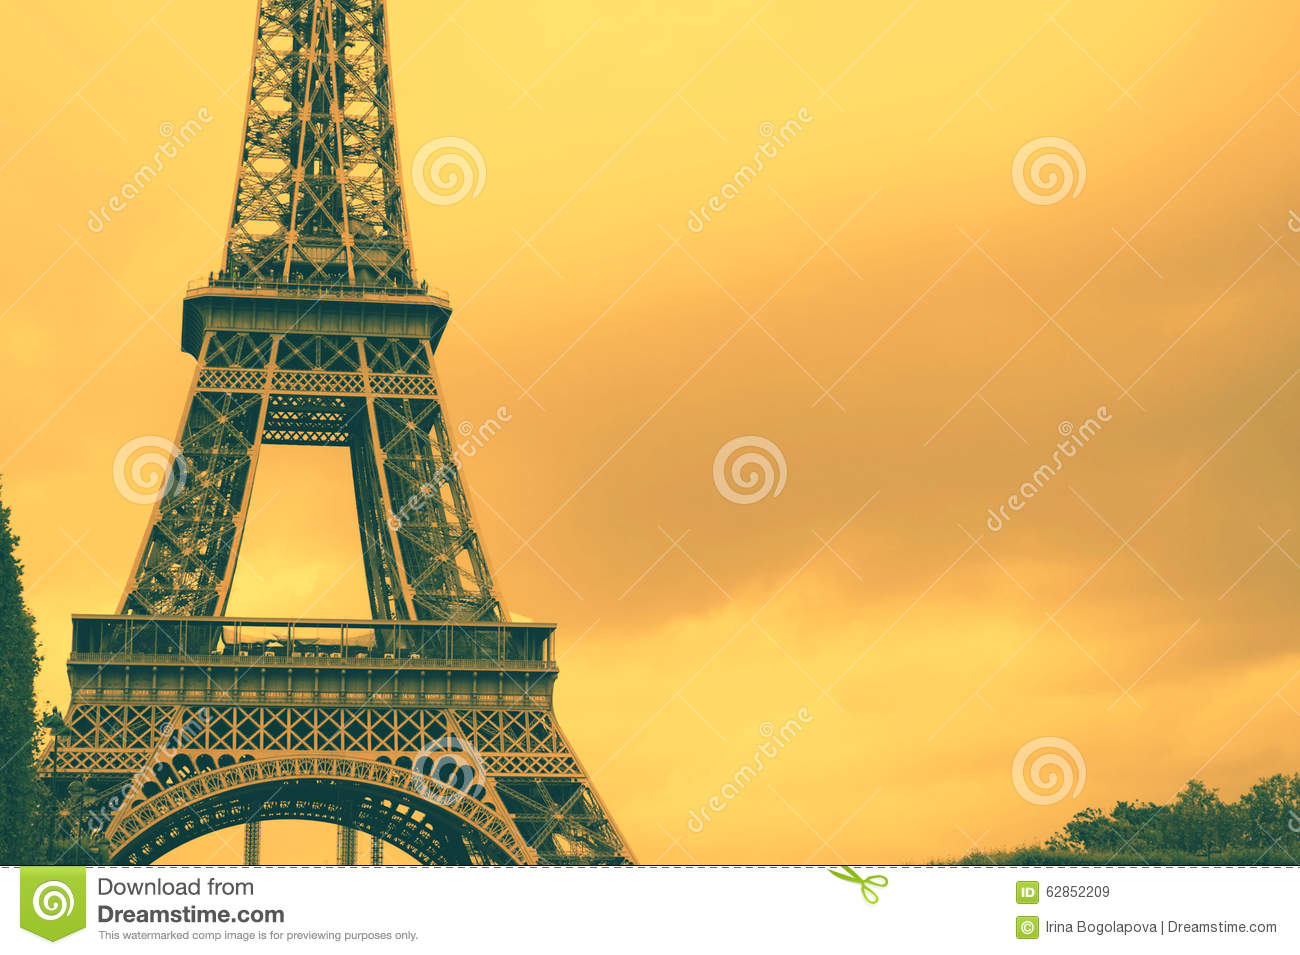 vintage electric chair replacement canvas for deck chairs france eiffel tower background stock photo - image: 62852209